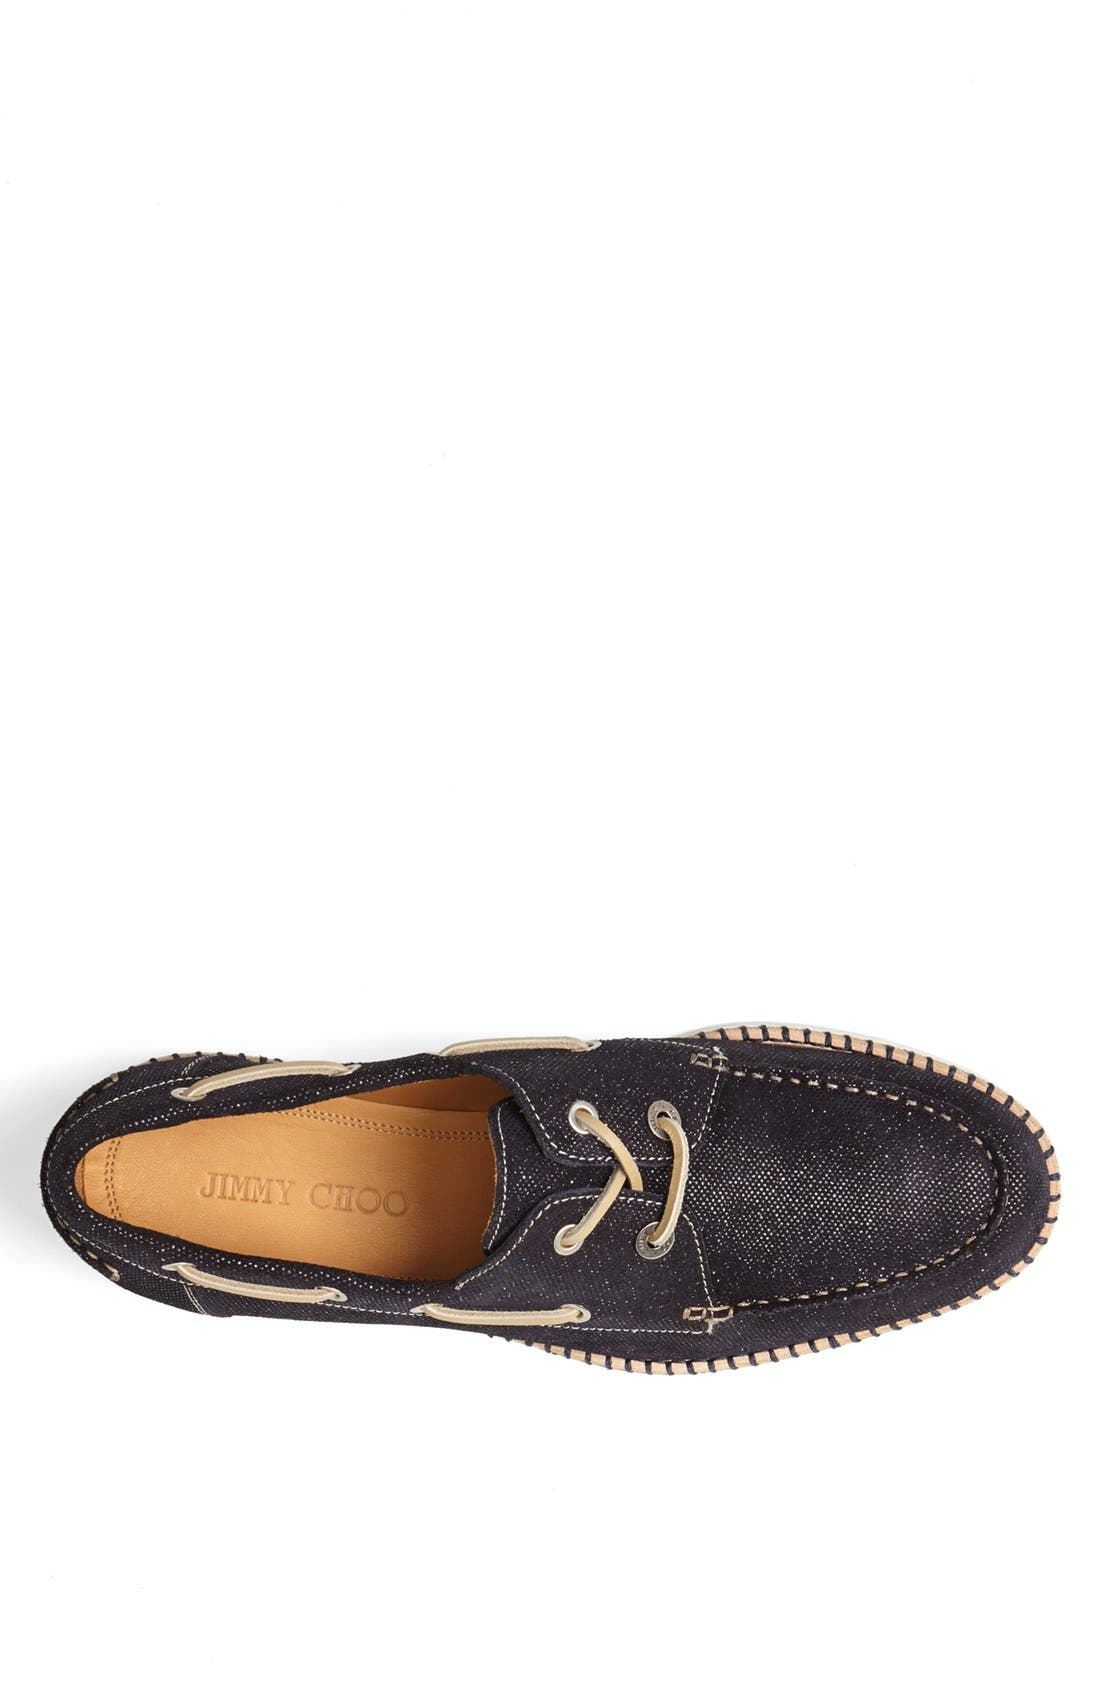 Alternate Image 3  - Jimmy Choo 'Danby' Glitter Boat Shoe